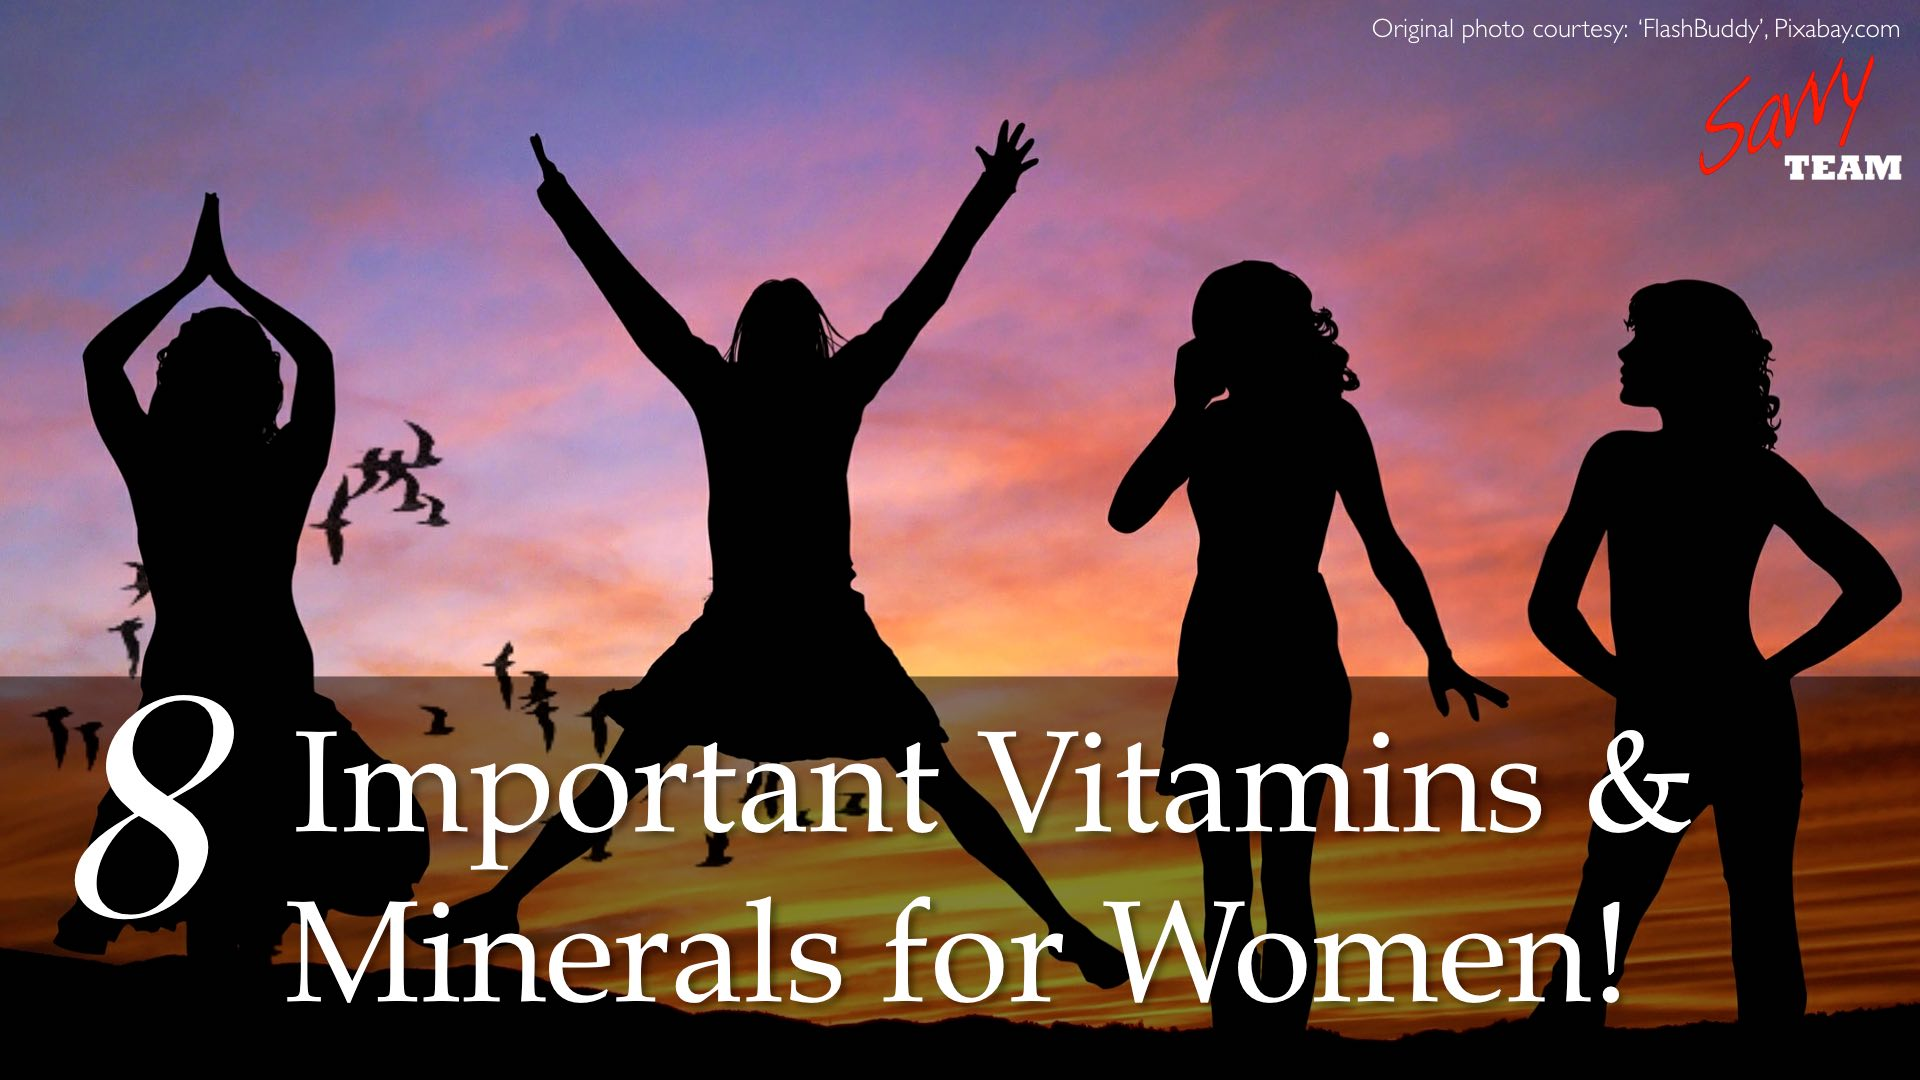 8 Important Vitamins and Minerals for Women